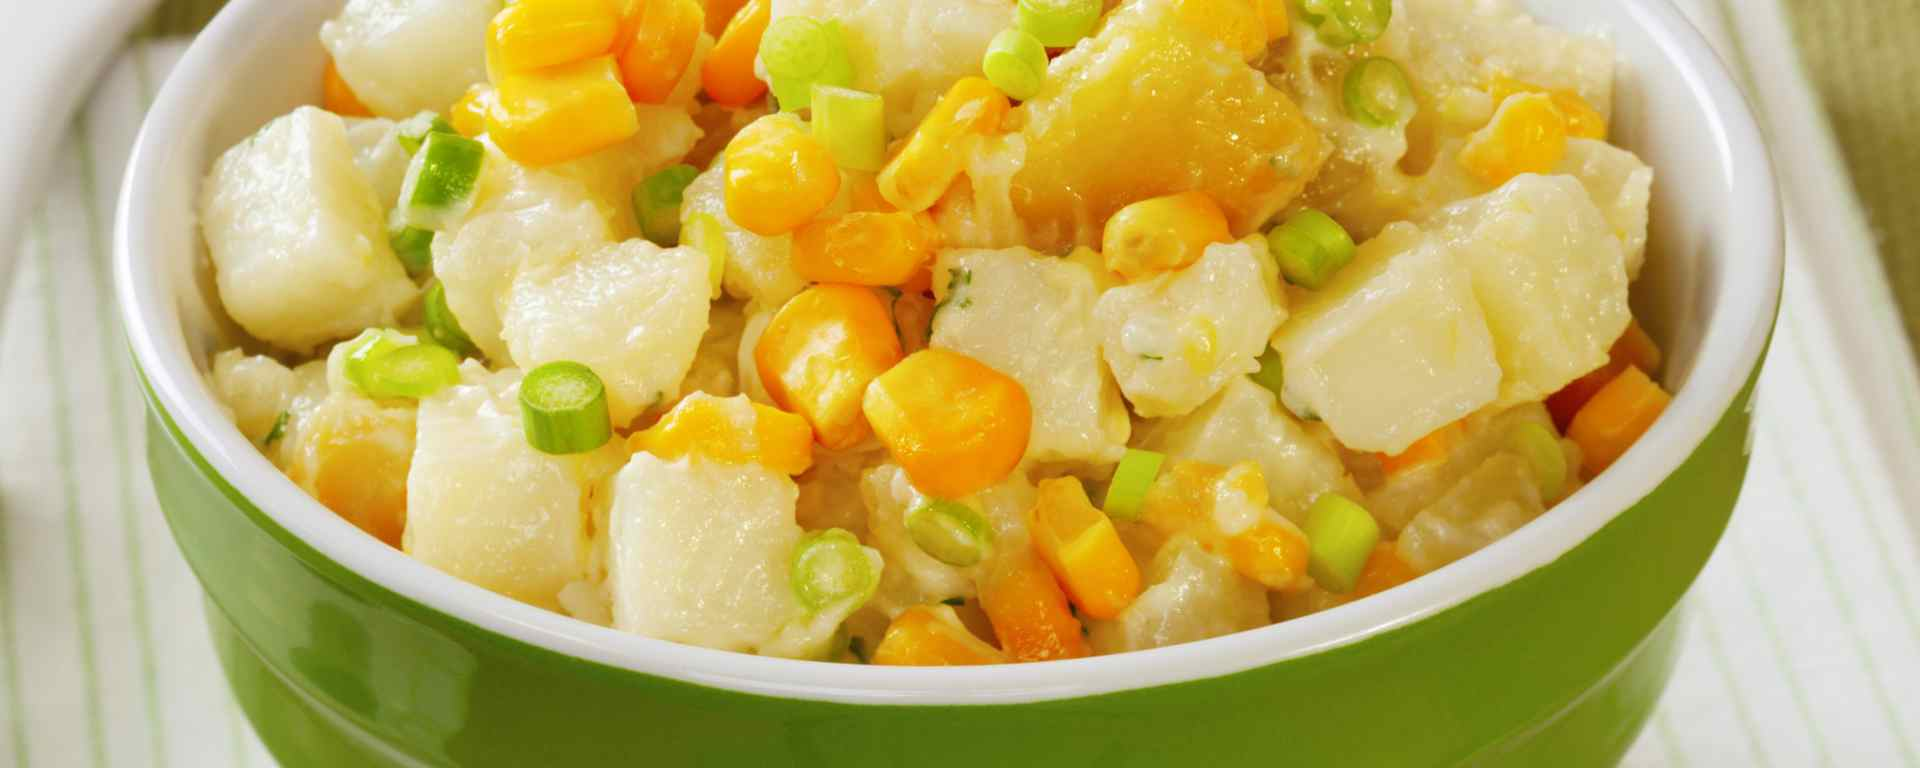 Photo for - Skillet Corn and Potatoes